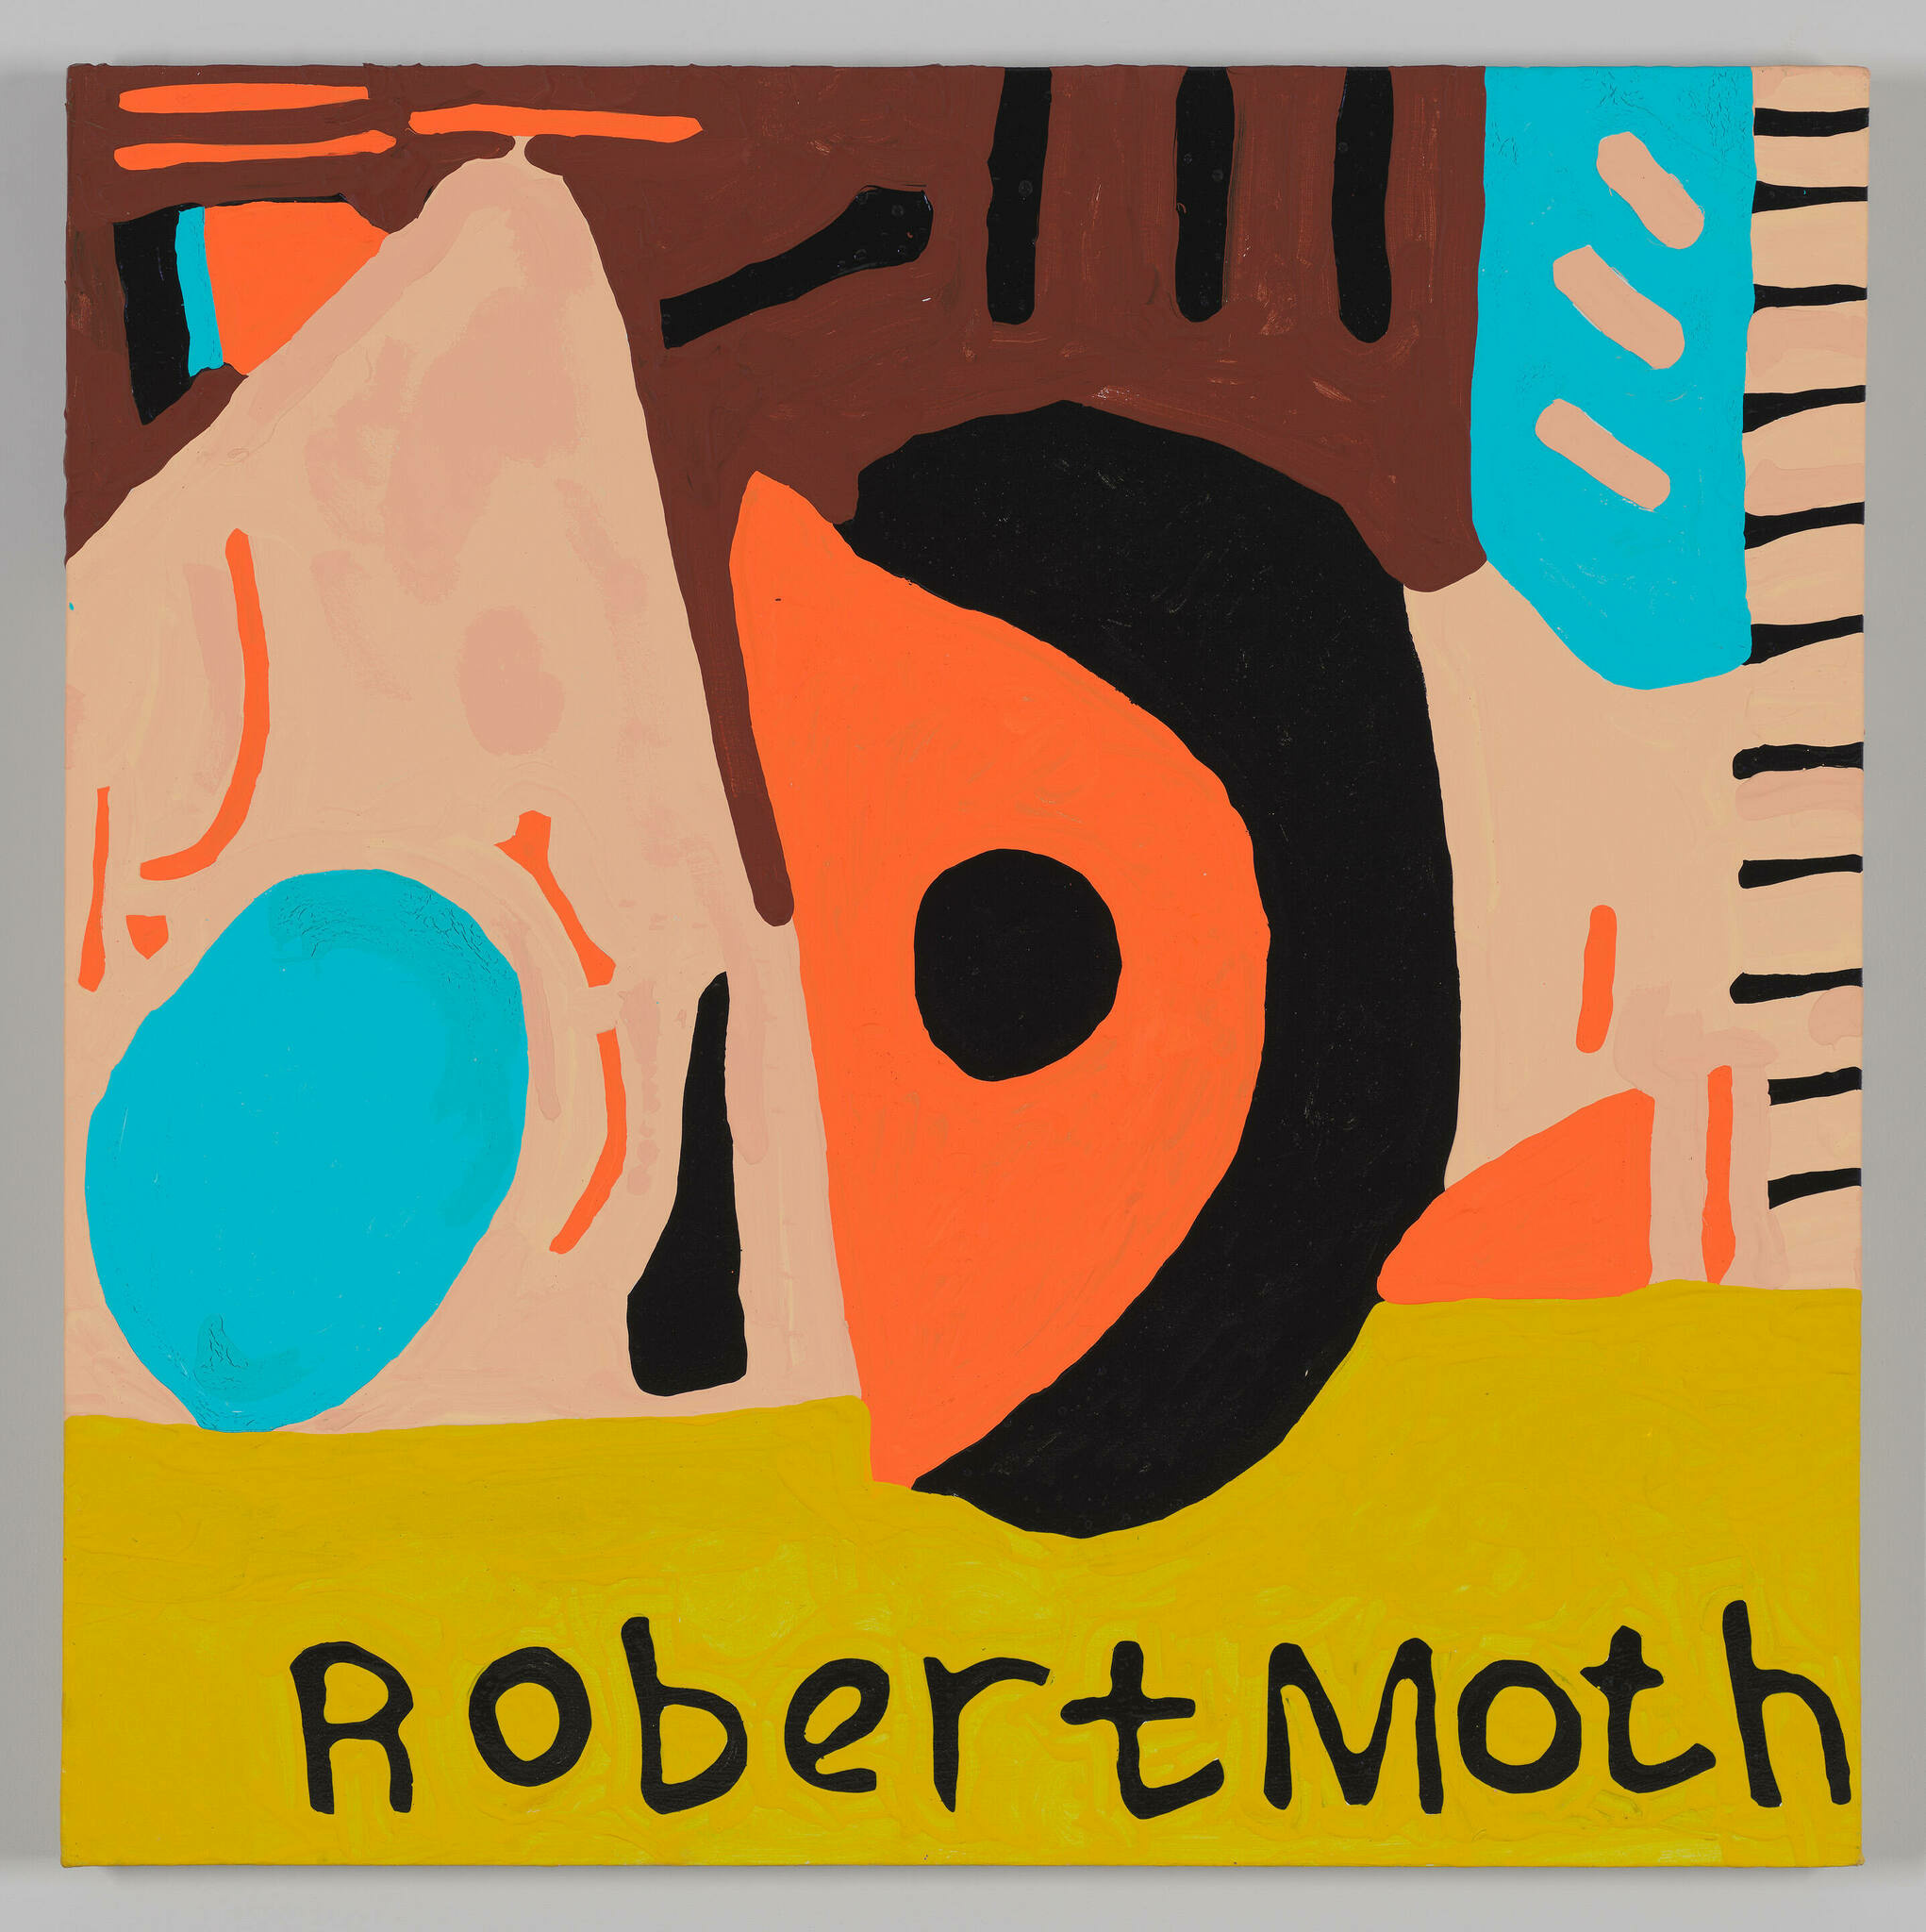 """Organic shapes in brown, orange, black, peach and turquoise float above of yellow horizon on which the words """"Robert Moth"""" are written in black."""